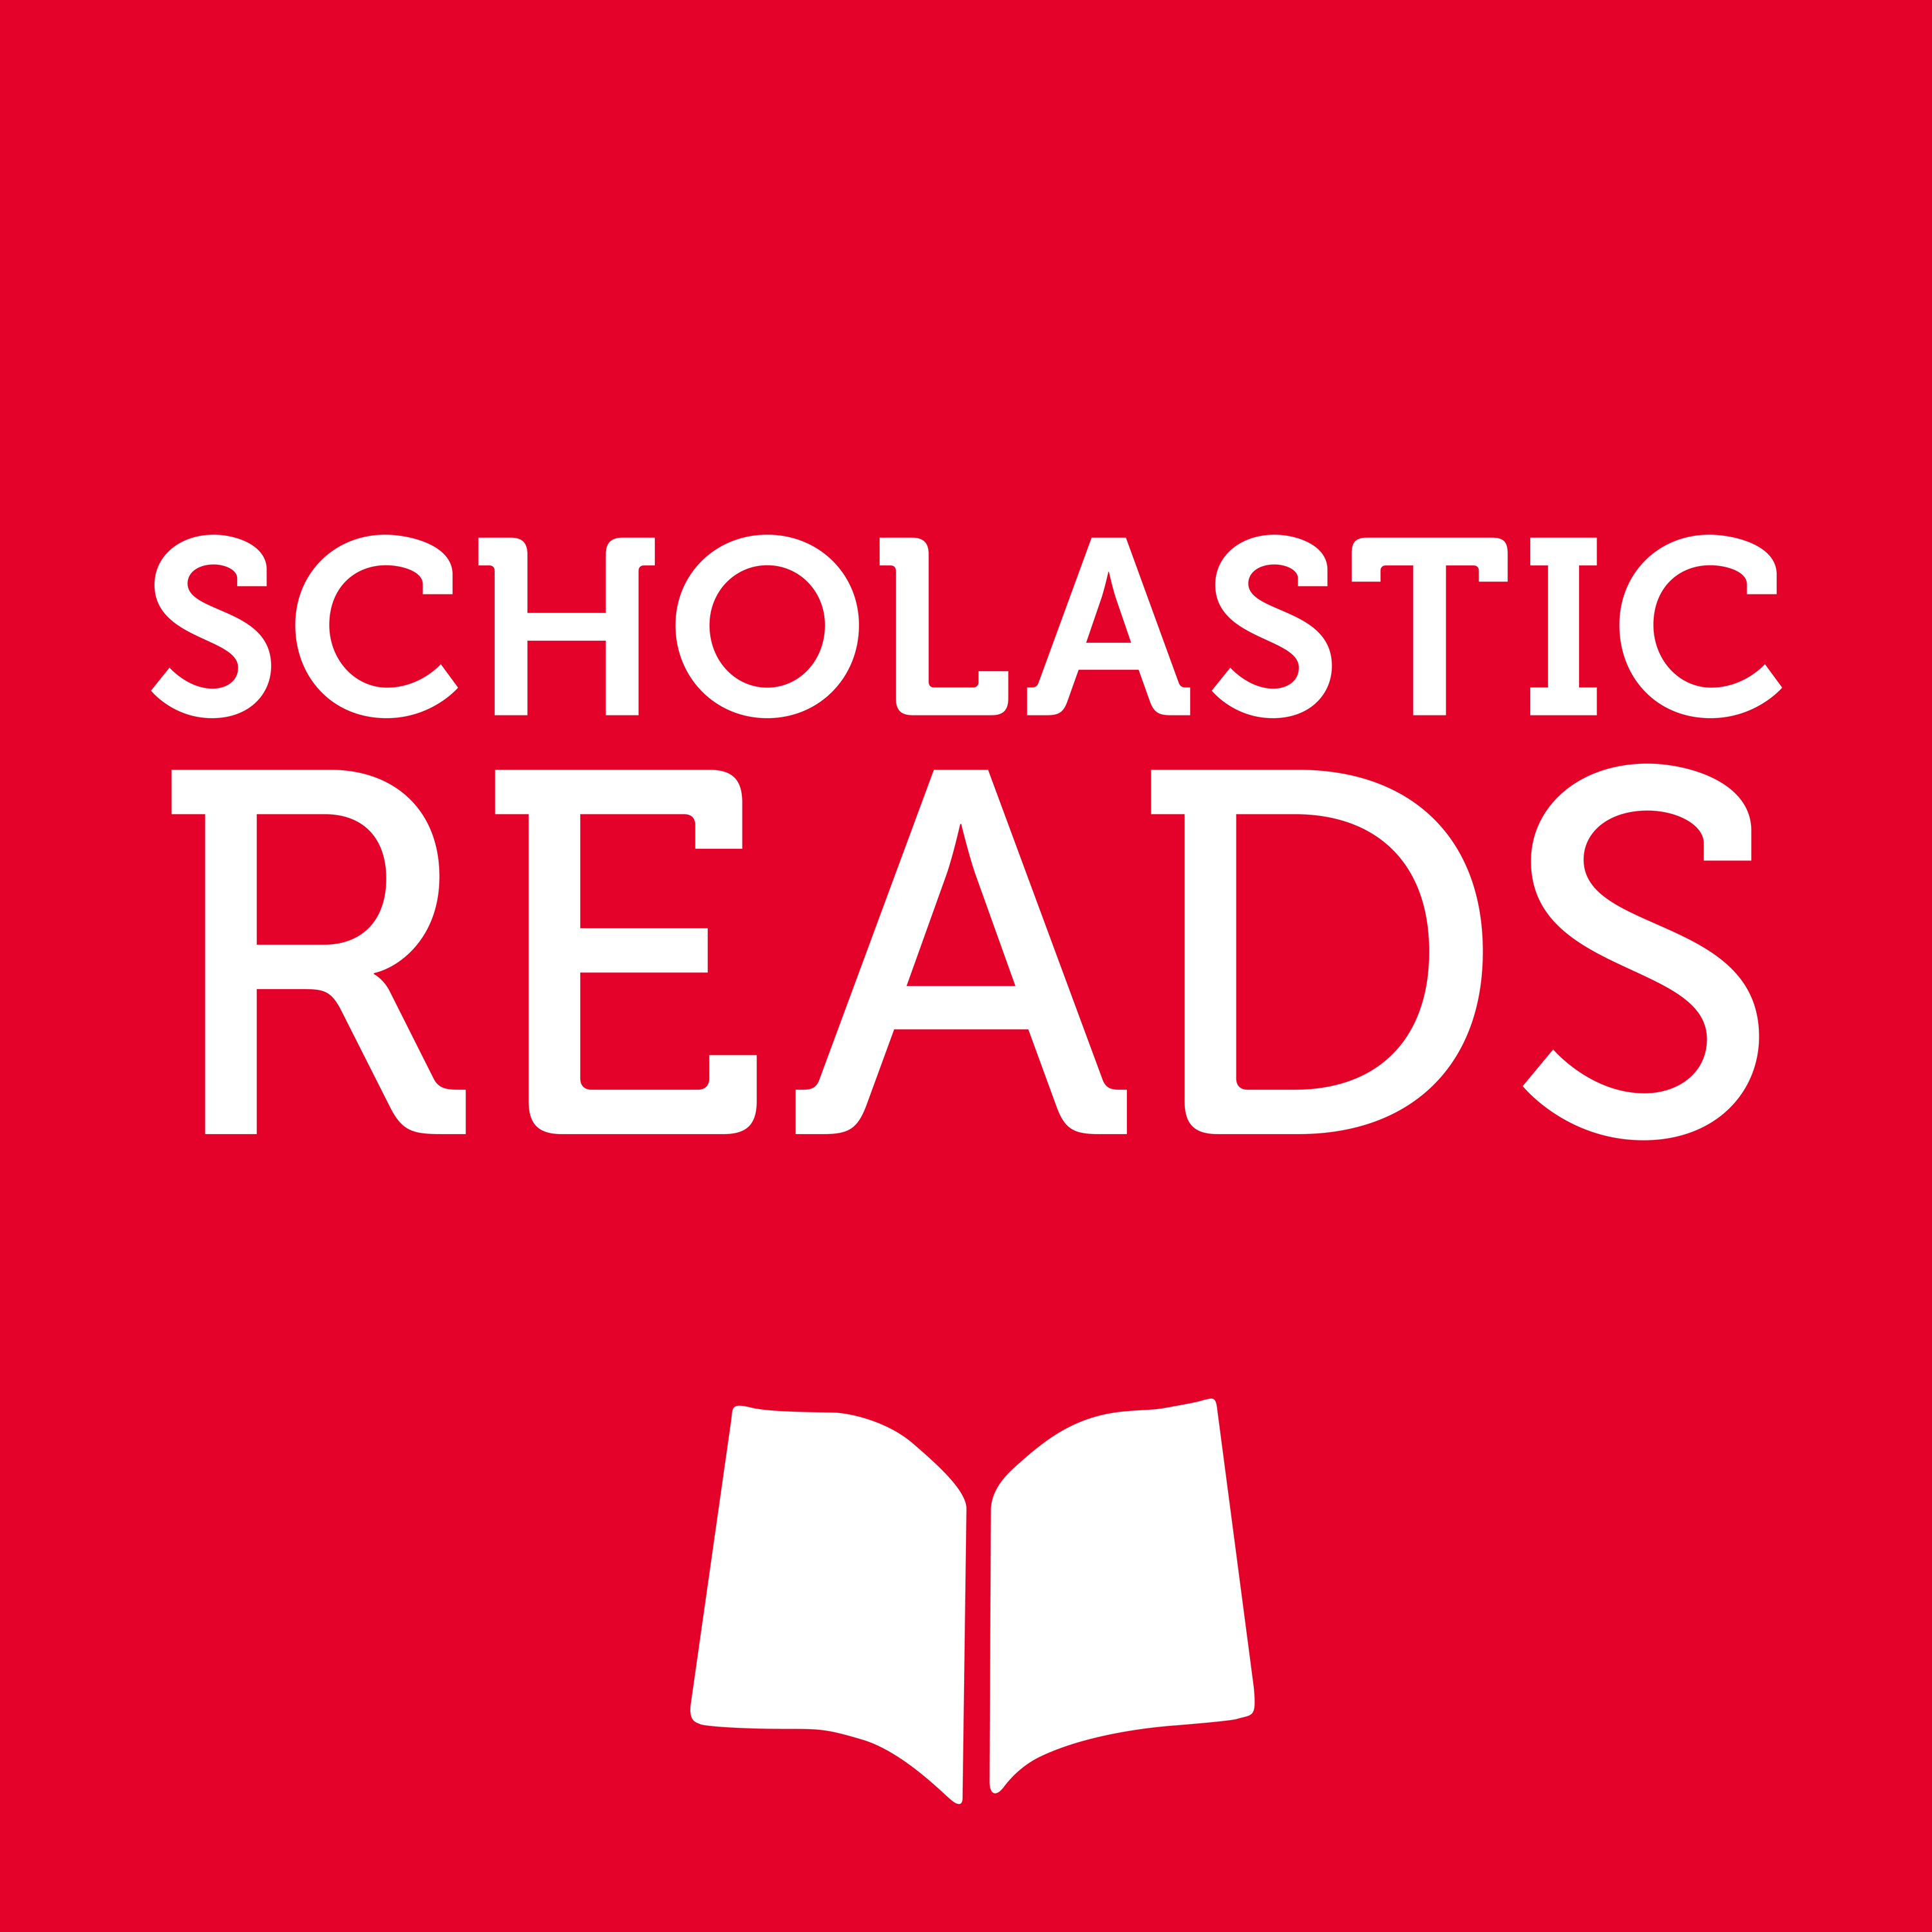 New Podcast Series Scholastic Reads Launches Today